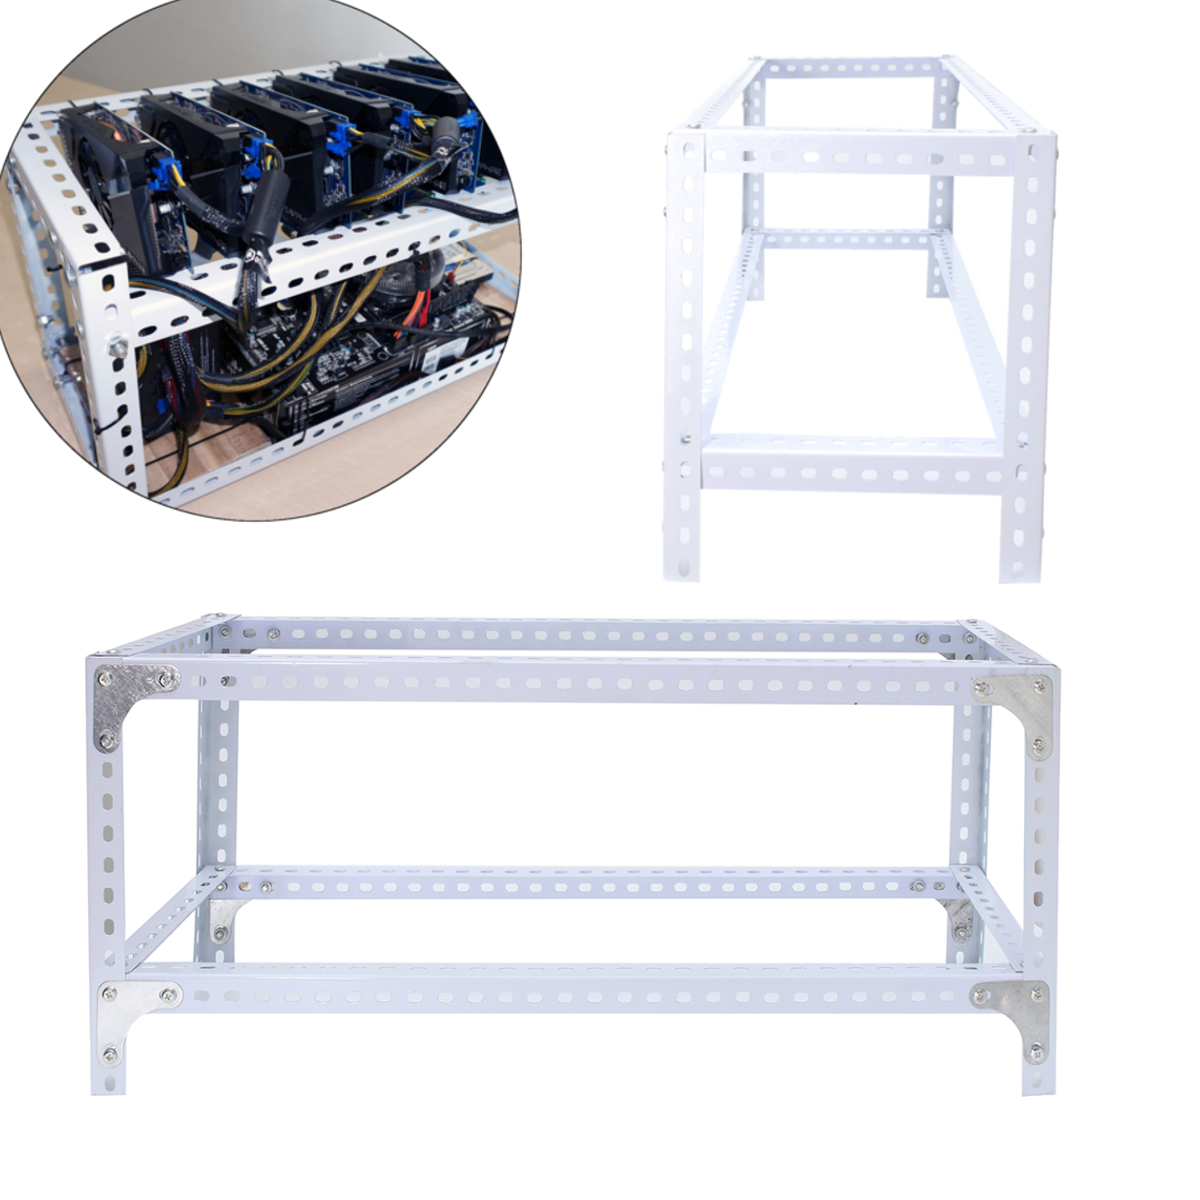 Steel Crypto Coin Open Air Mining Frame Rig Case up to 6 GPU ETH BTC Ethereum